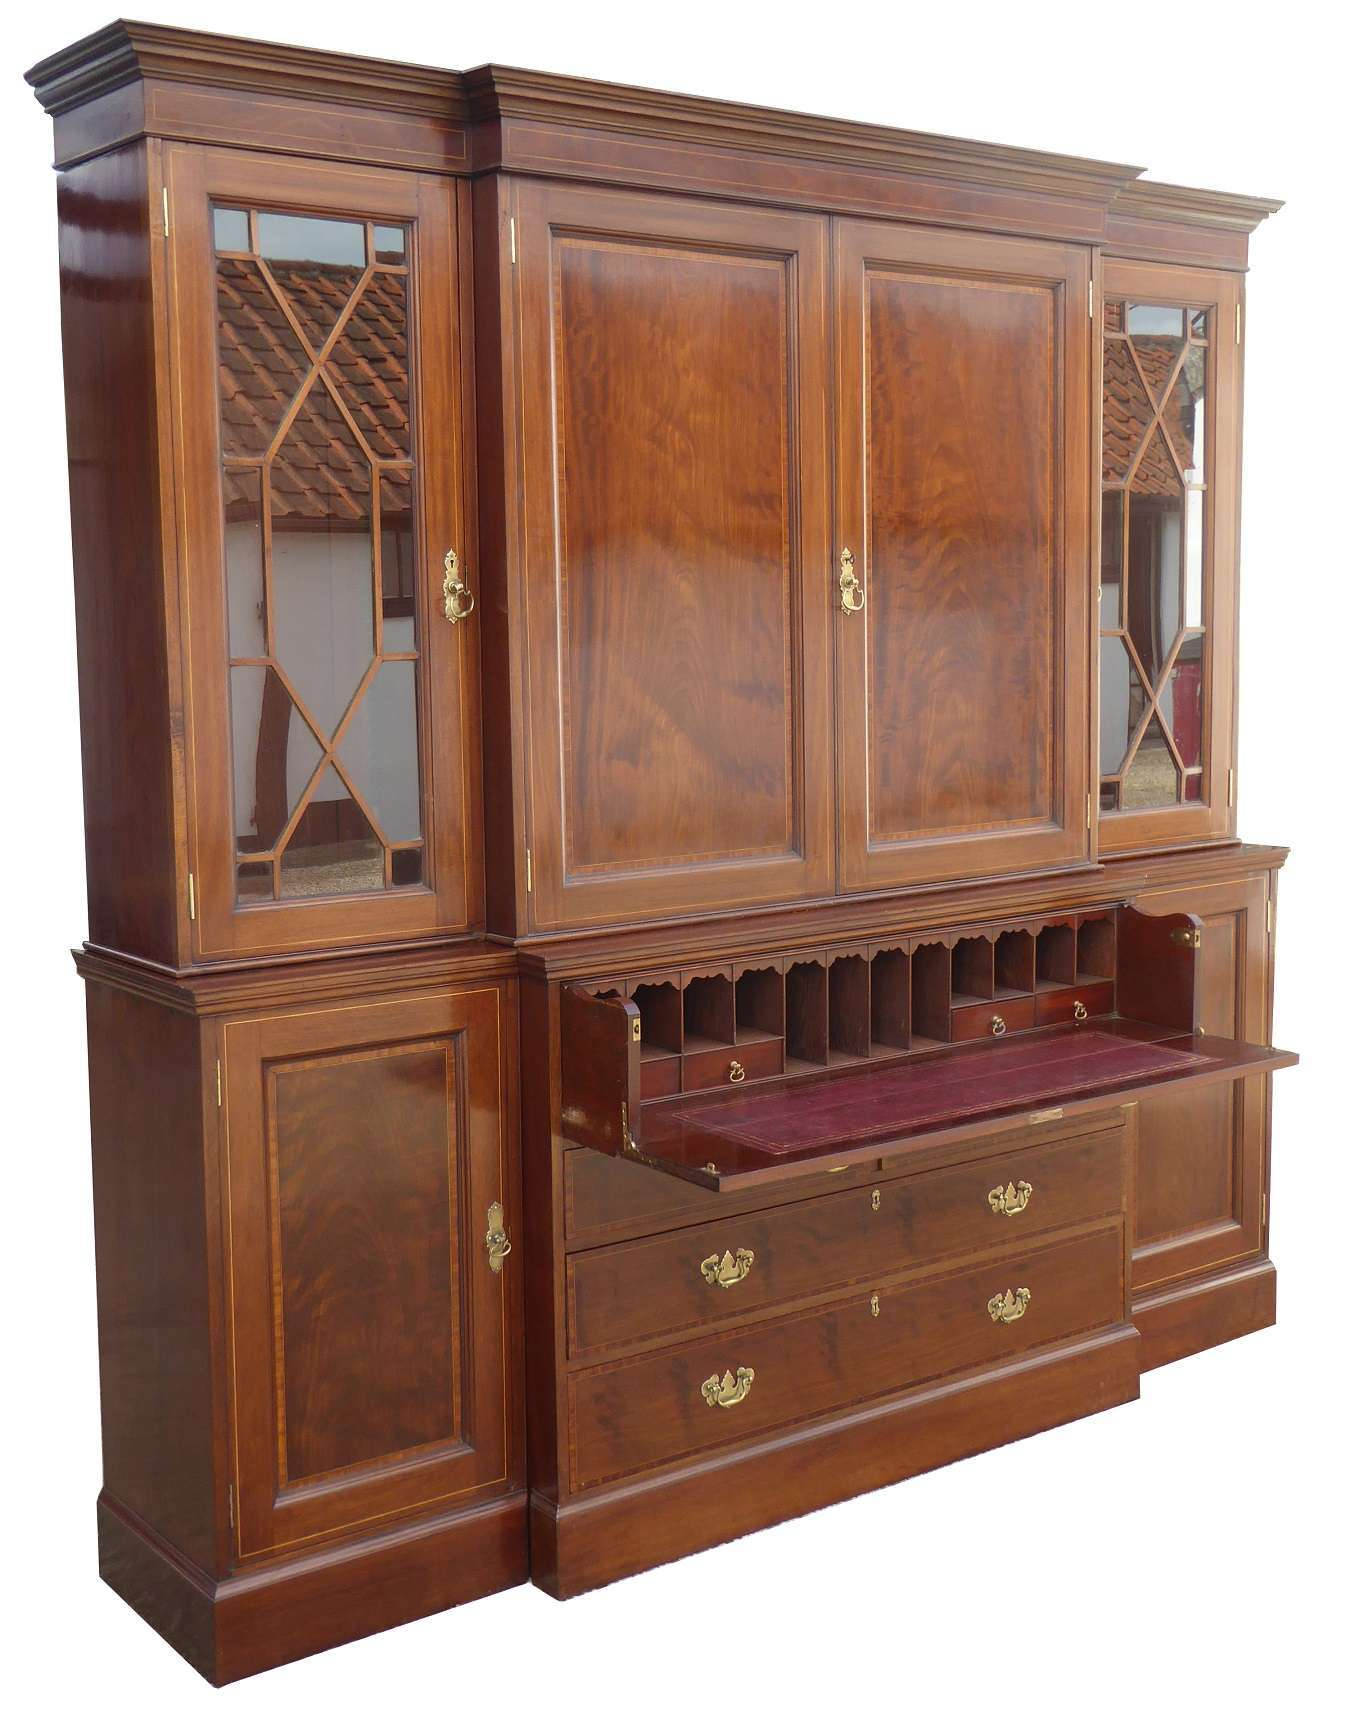 Edwardian Mahogany and Inlaid Breakfront Bookcase